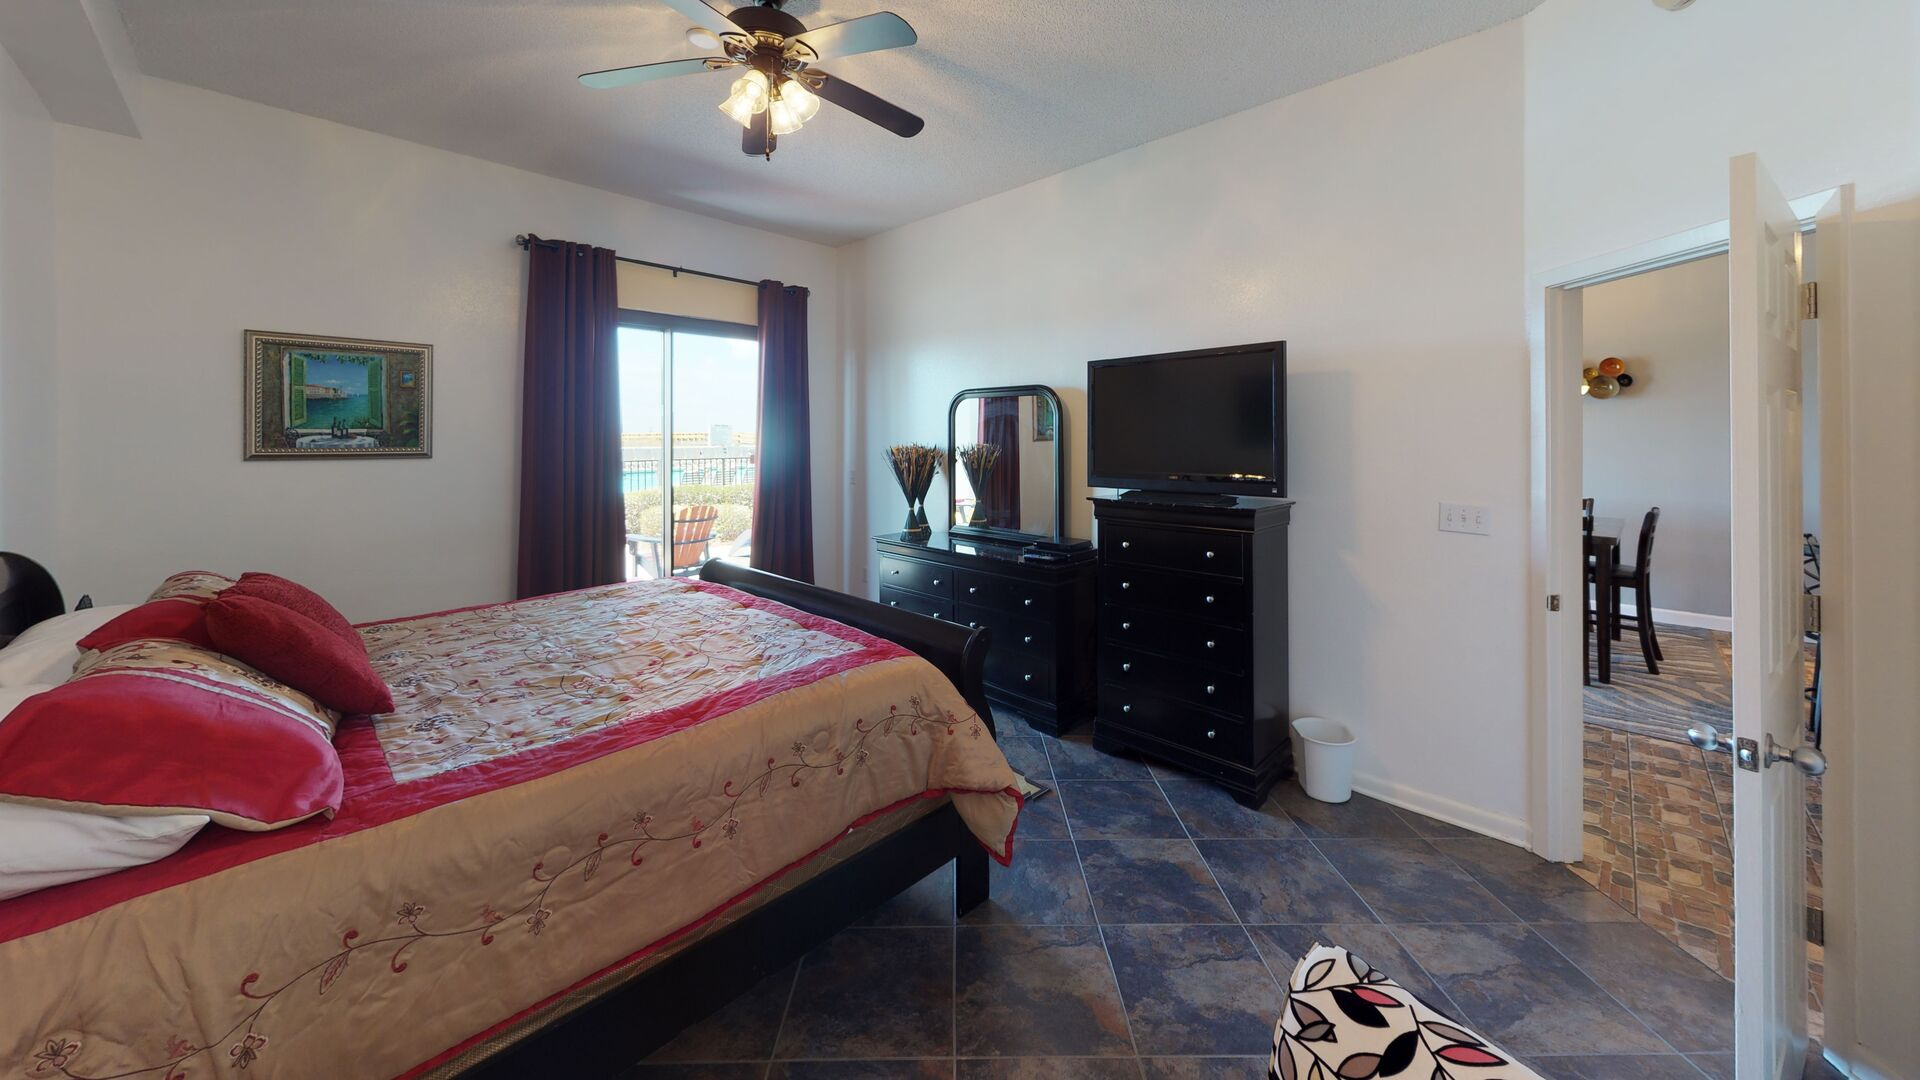 Large Bed, Dresser, TV, Drawer Chest with Mirror, and Ceiling Fan.